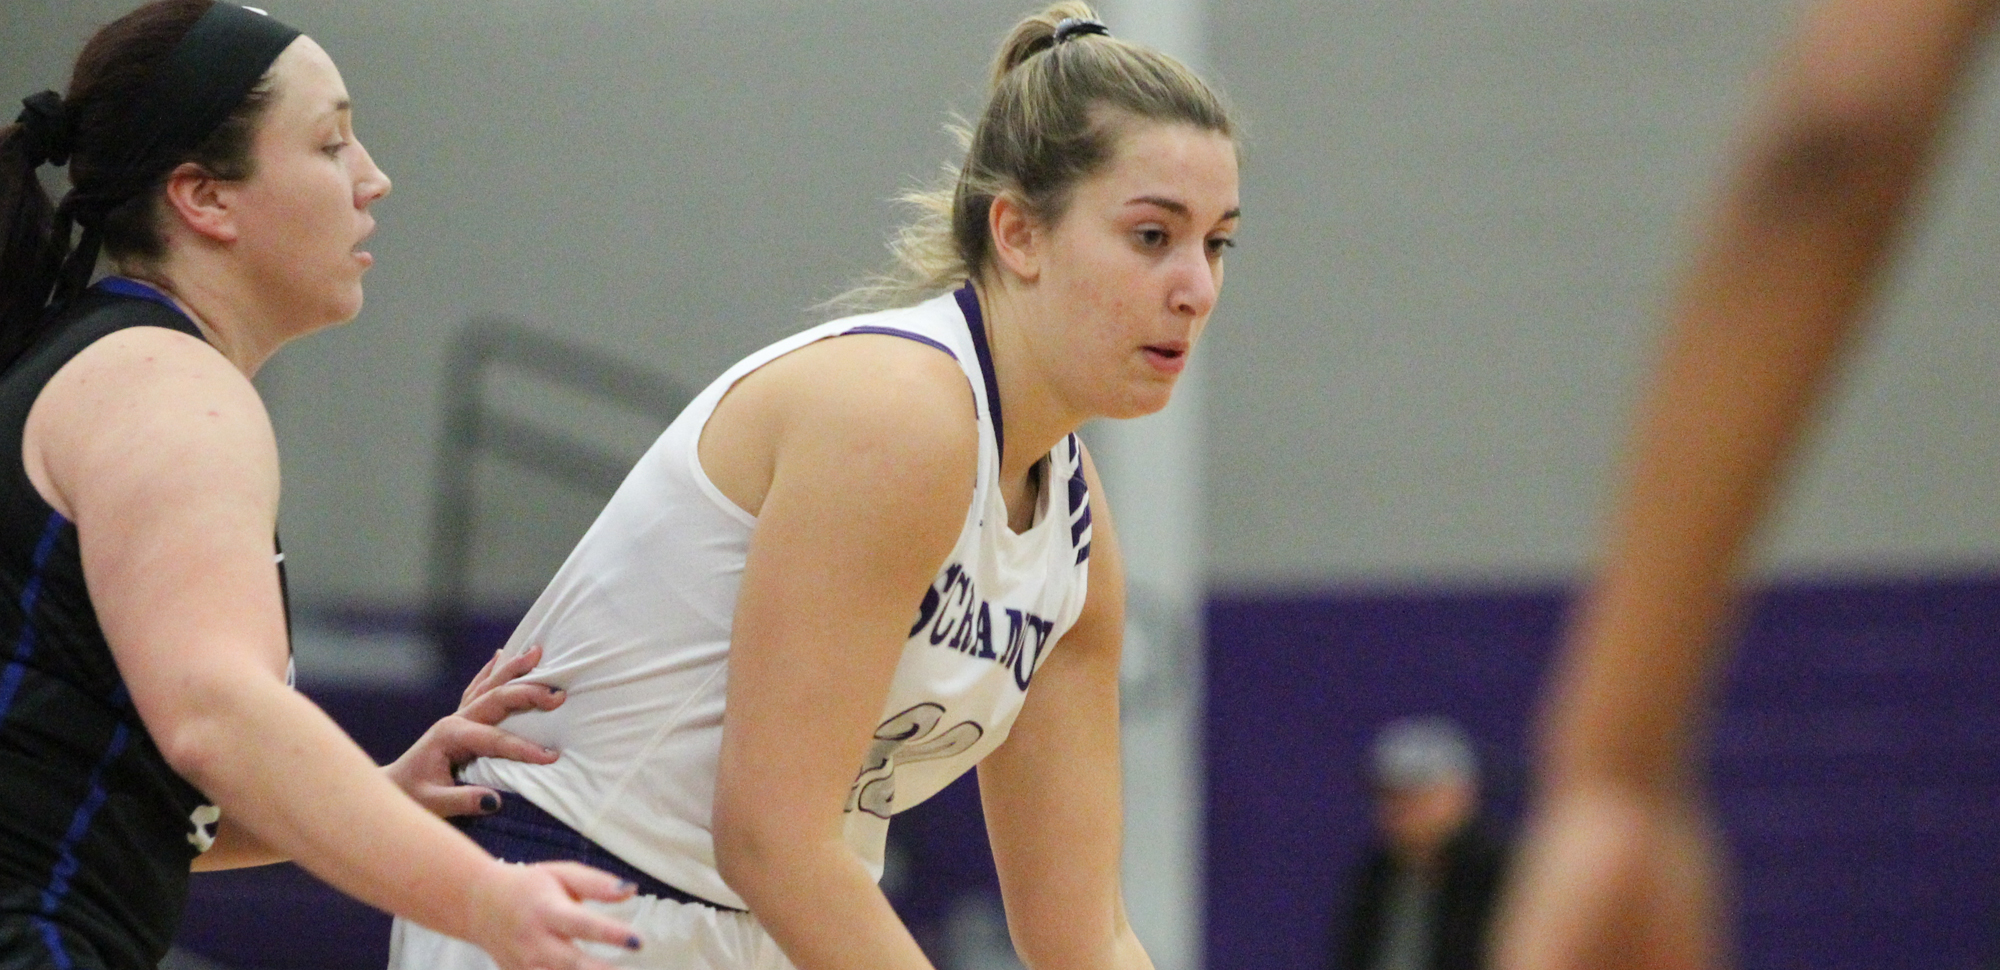 Junior forward Sofia Recupero poured in a career-high 22 points to lead the Lady Royals to a 65-53 win over Ithaca on Saturday as part of the 2018 Hilton Scranton Poinsettia Classic.